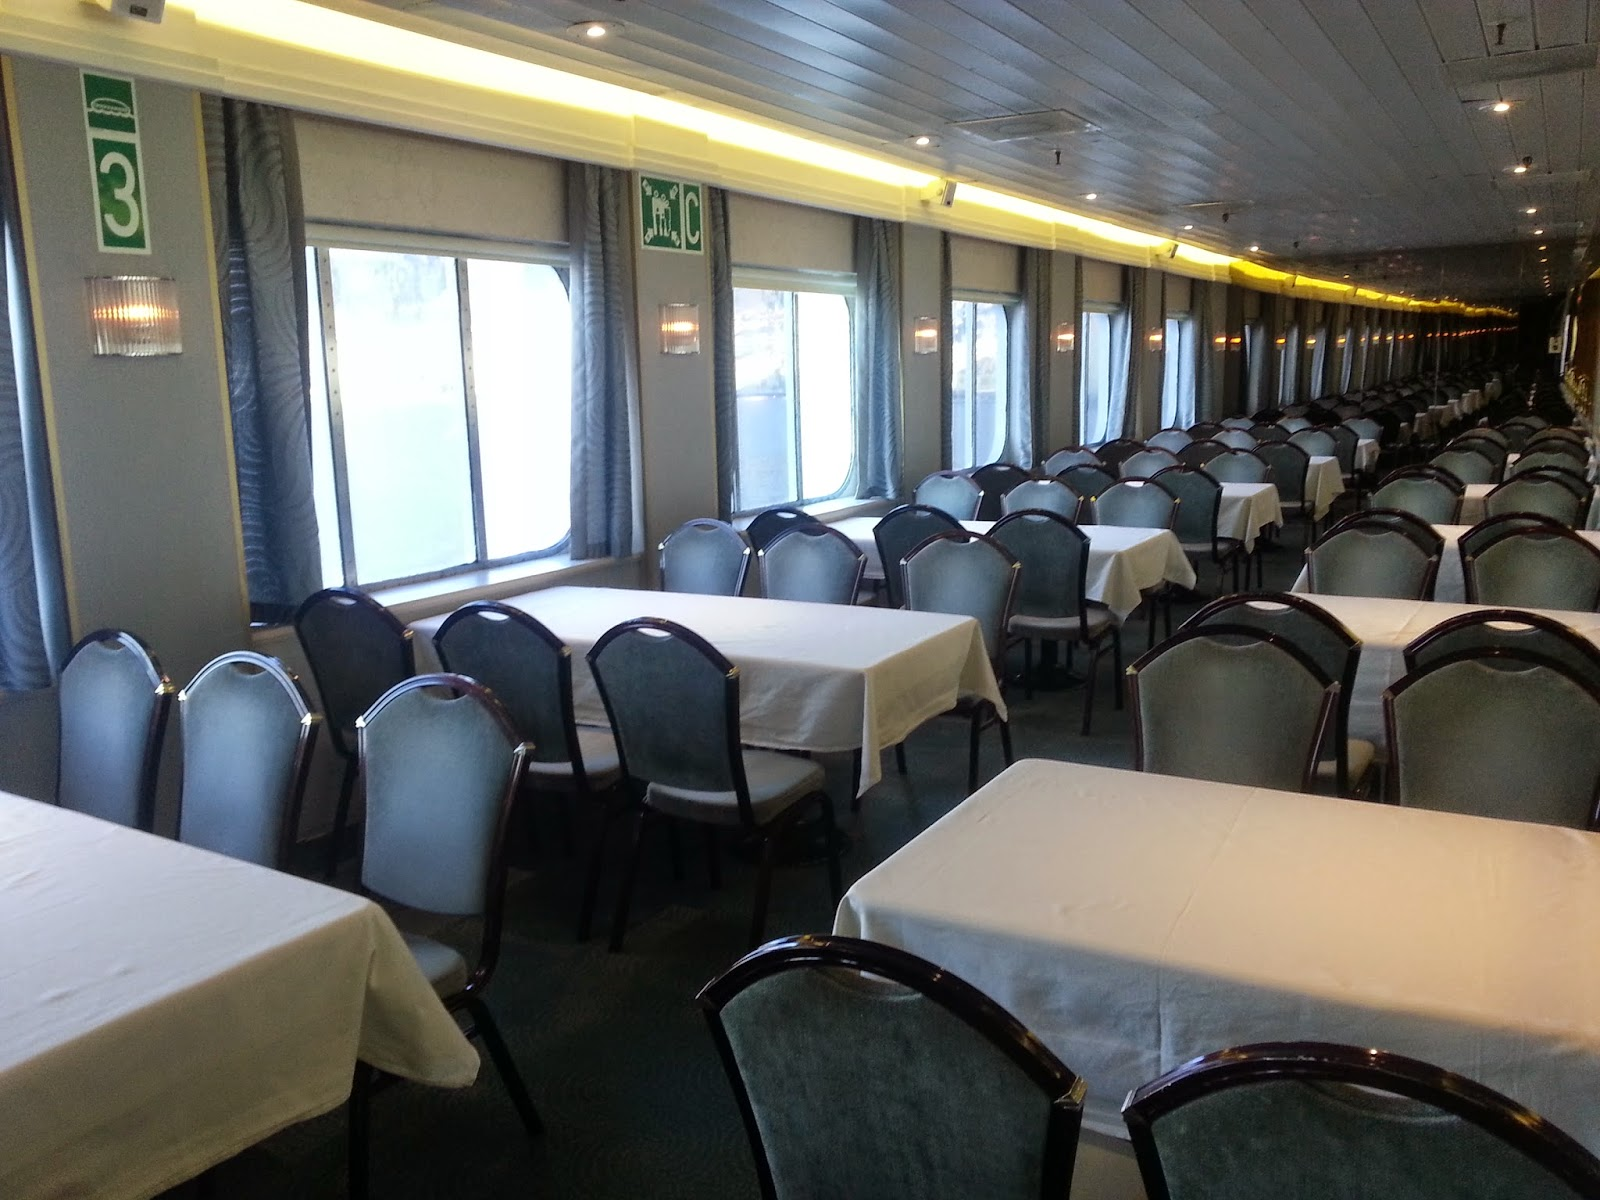 On Board Voyages of Discovery's Cruise Ship MV Voyager - Discovery Restaurant